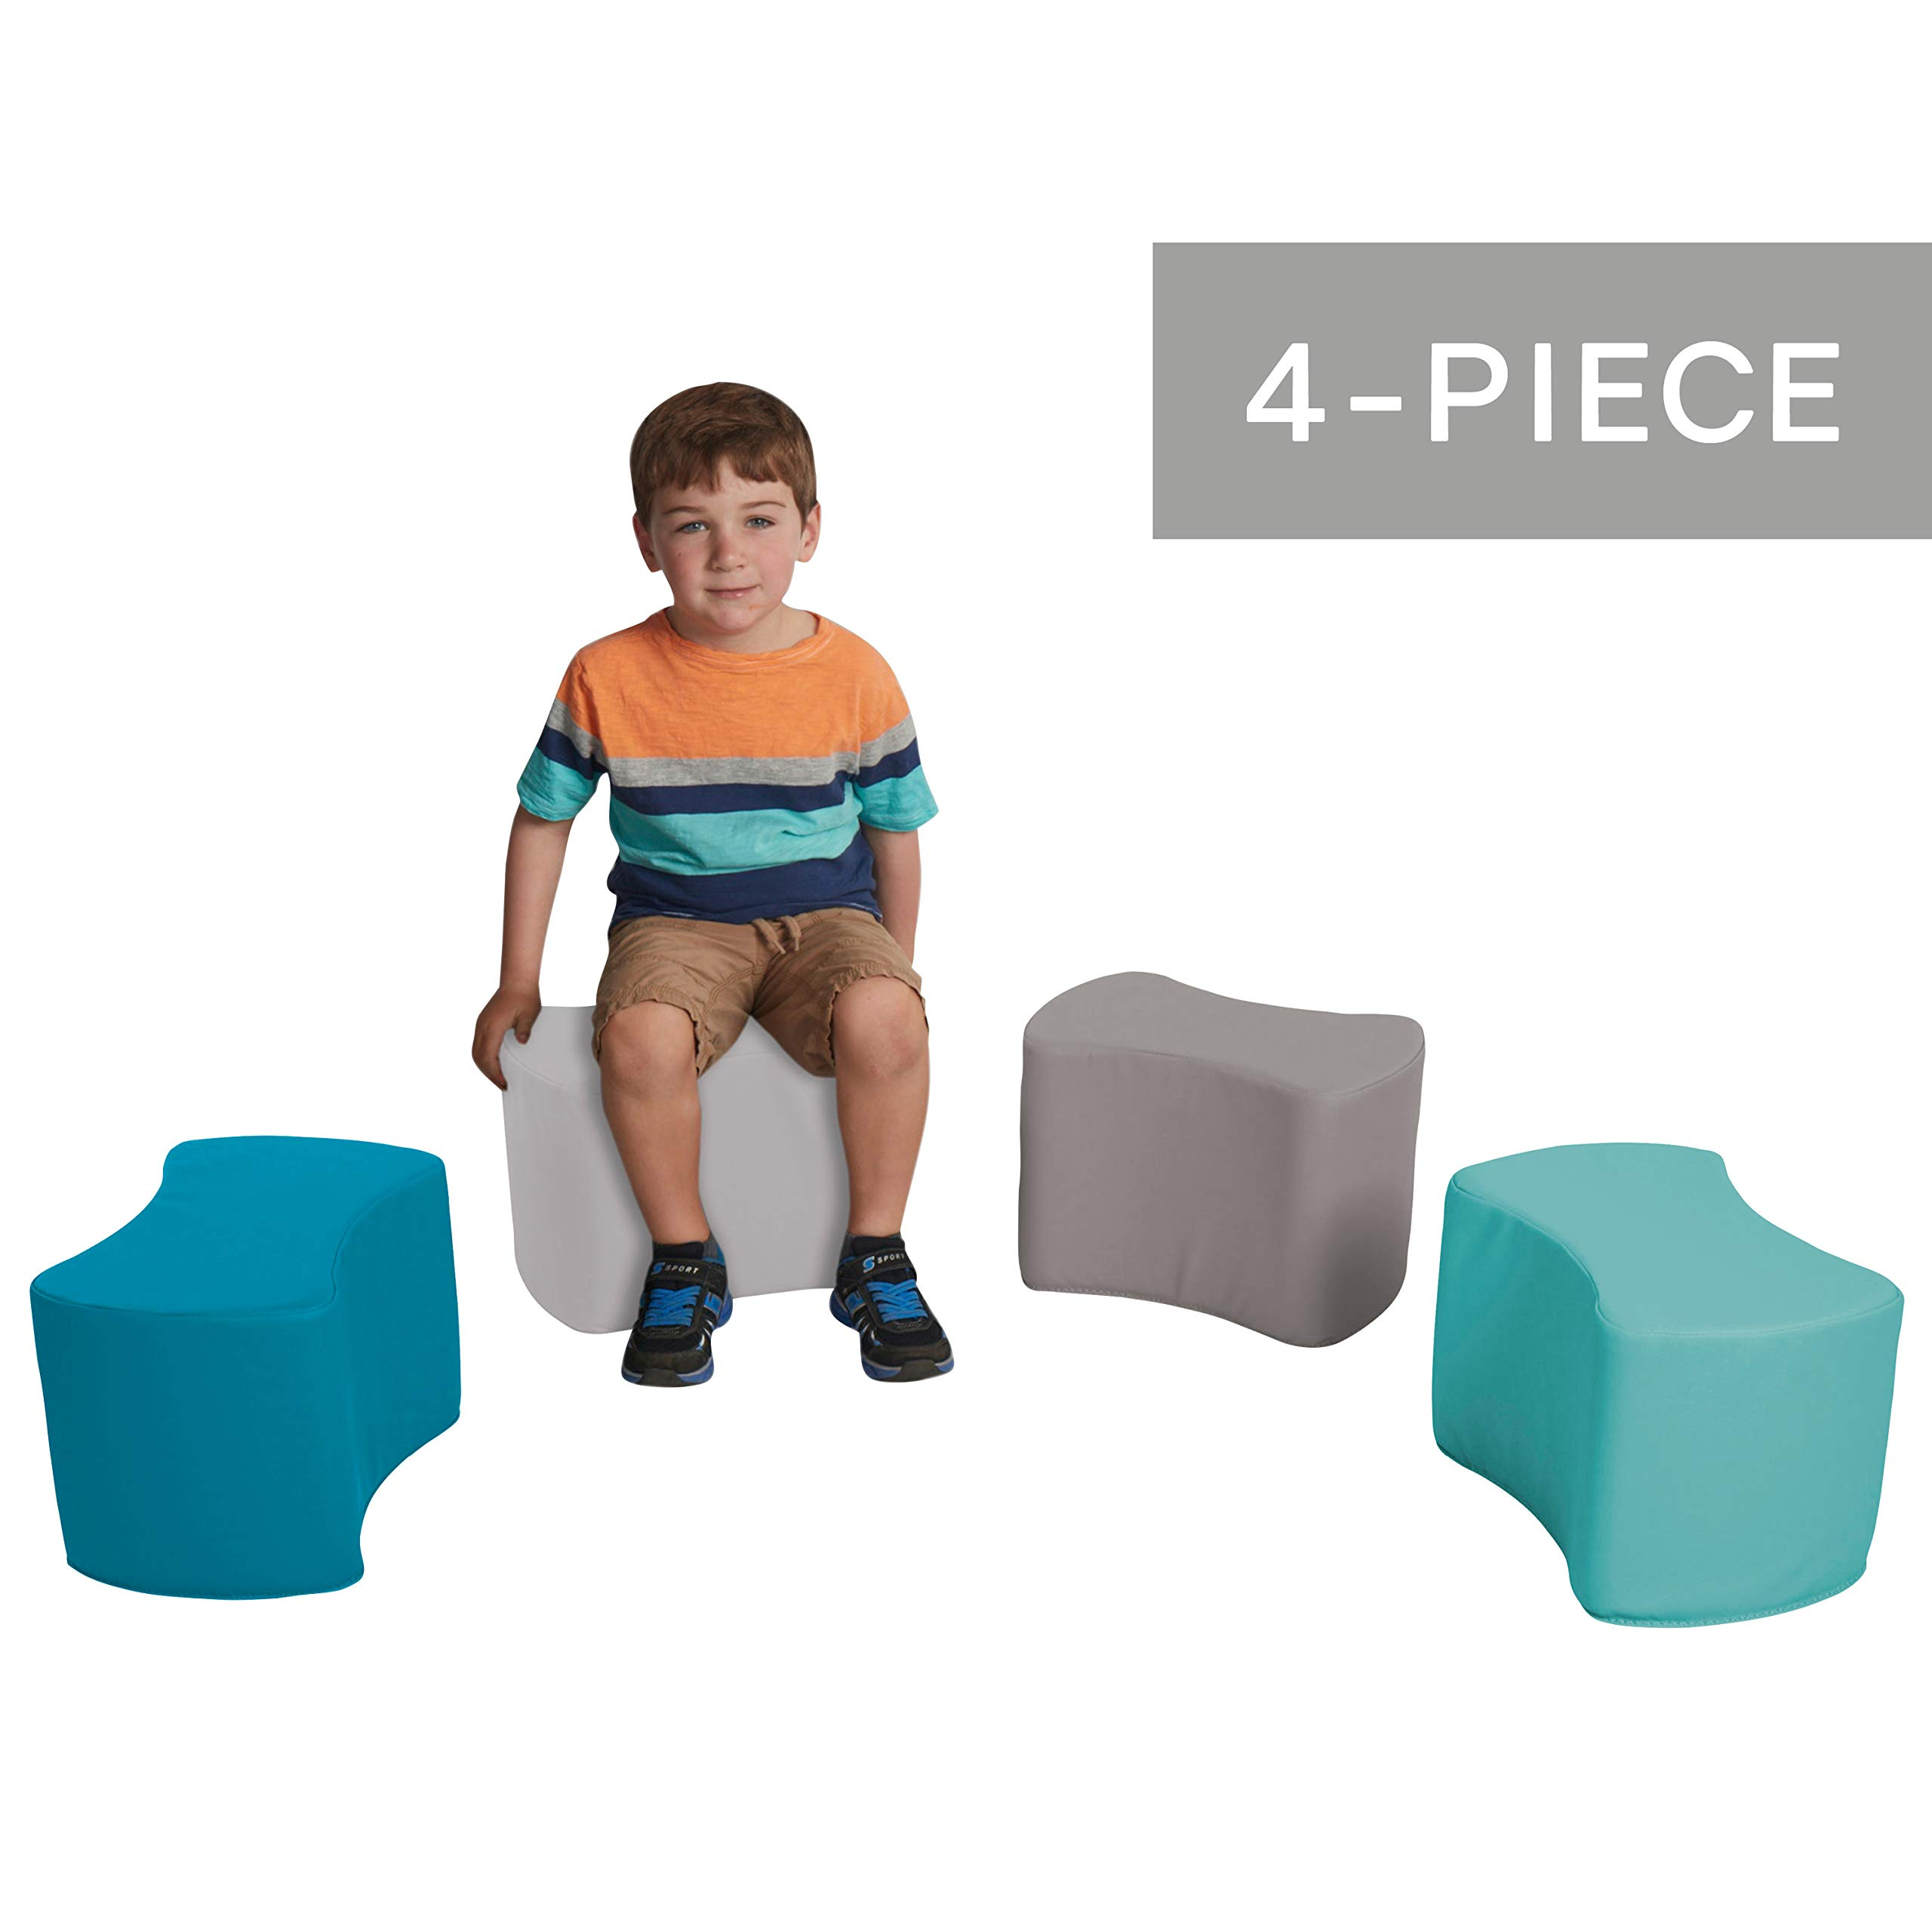 FDP SoftScape Butterfly Stool Modular Seating Set for Toddlers and Kids, Colorful Flexible Seating for Classrooms and Daycares (4-Piece Set) - Contemporary